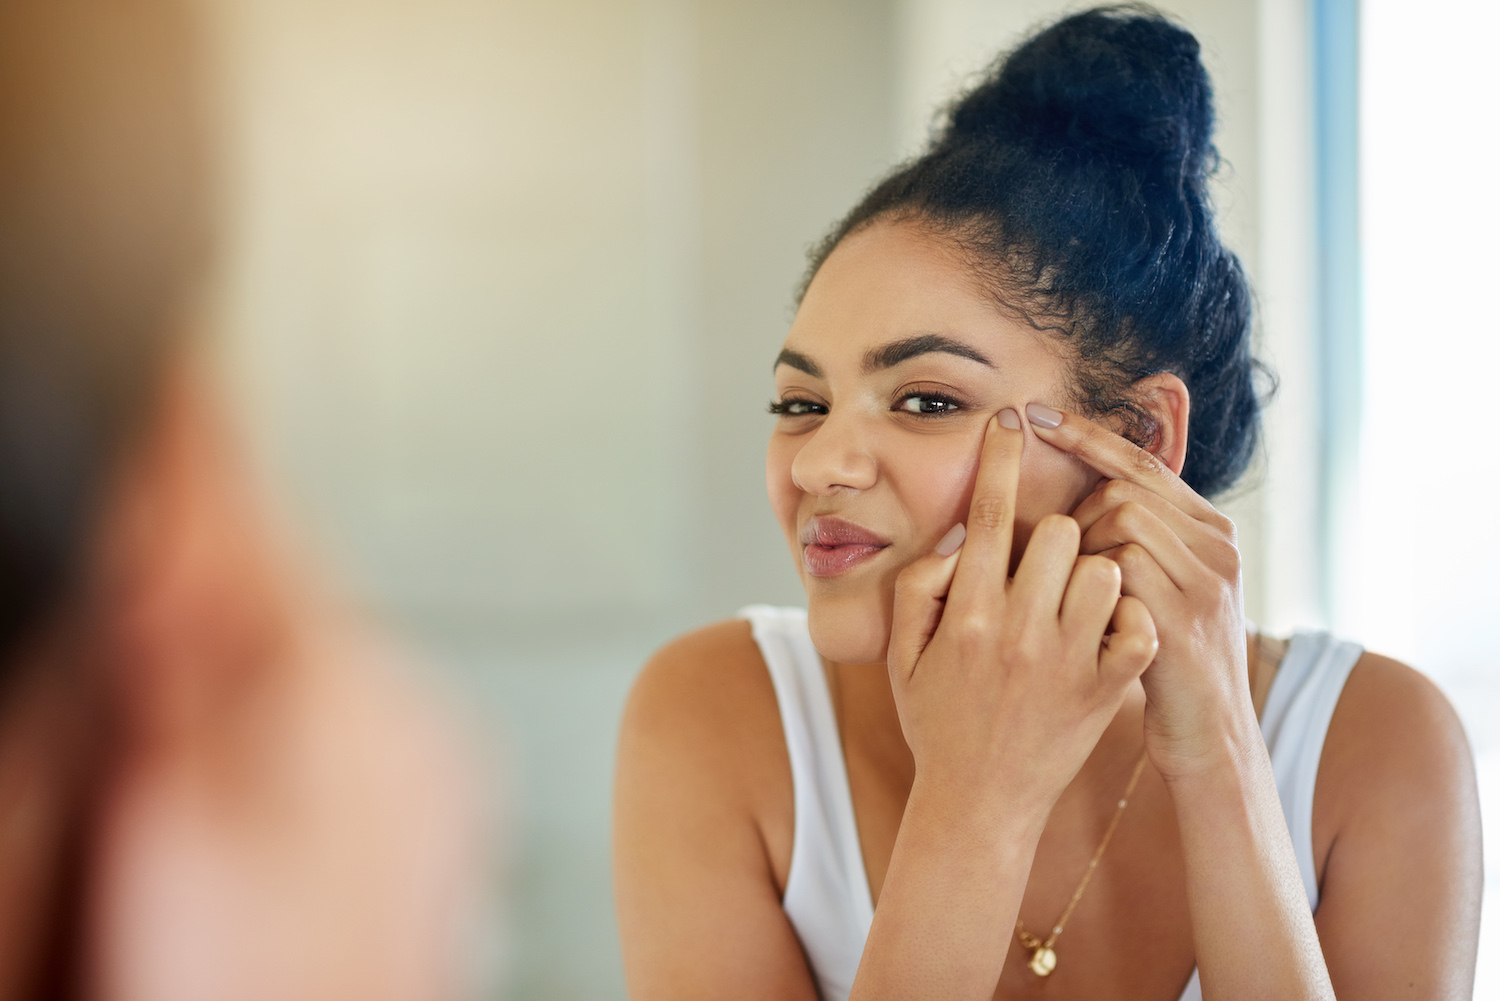 Young woman popping zit on face while looking in mirror